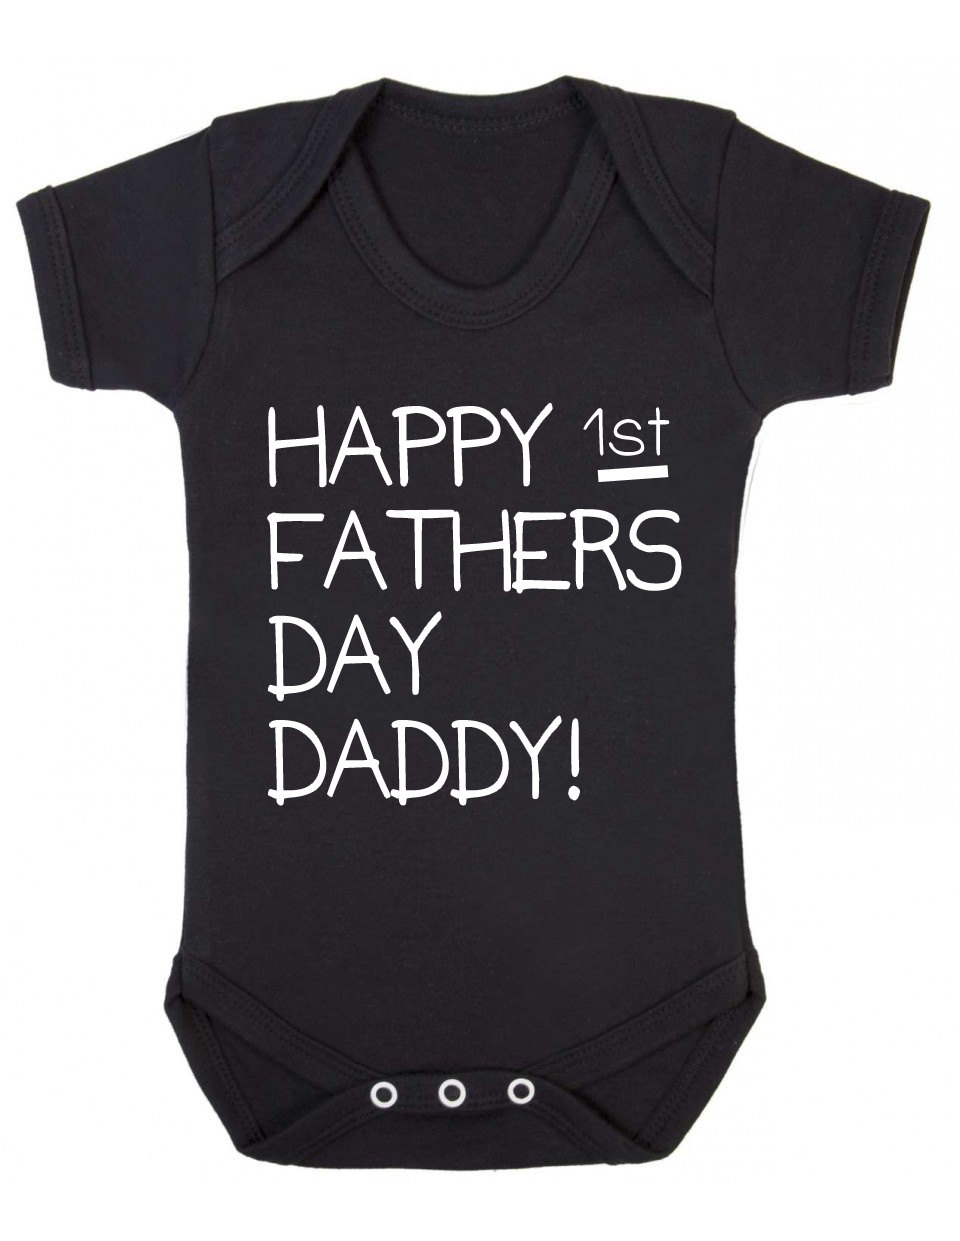 Mums Gift to You Happy Fathers Day Your Gift from Me Cute Novelty Baby Grow Sleepsuit Great Fathers Day Present